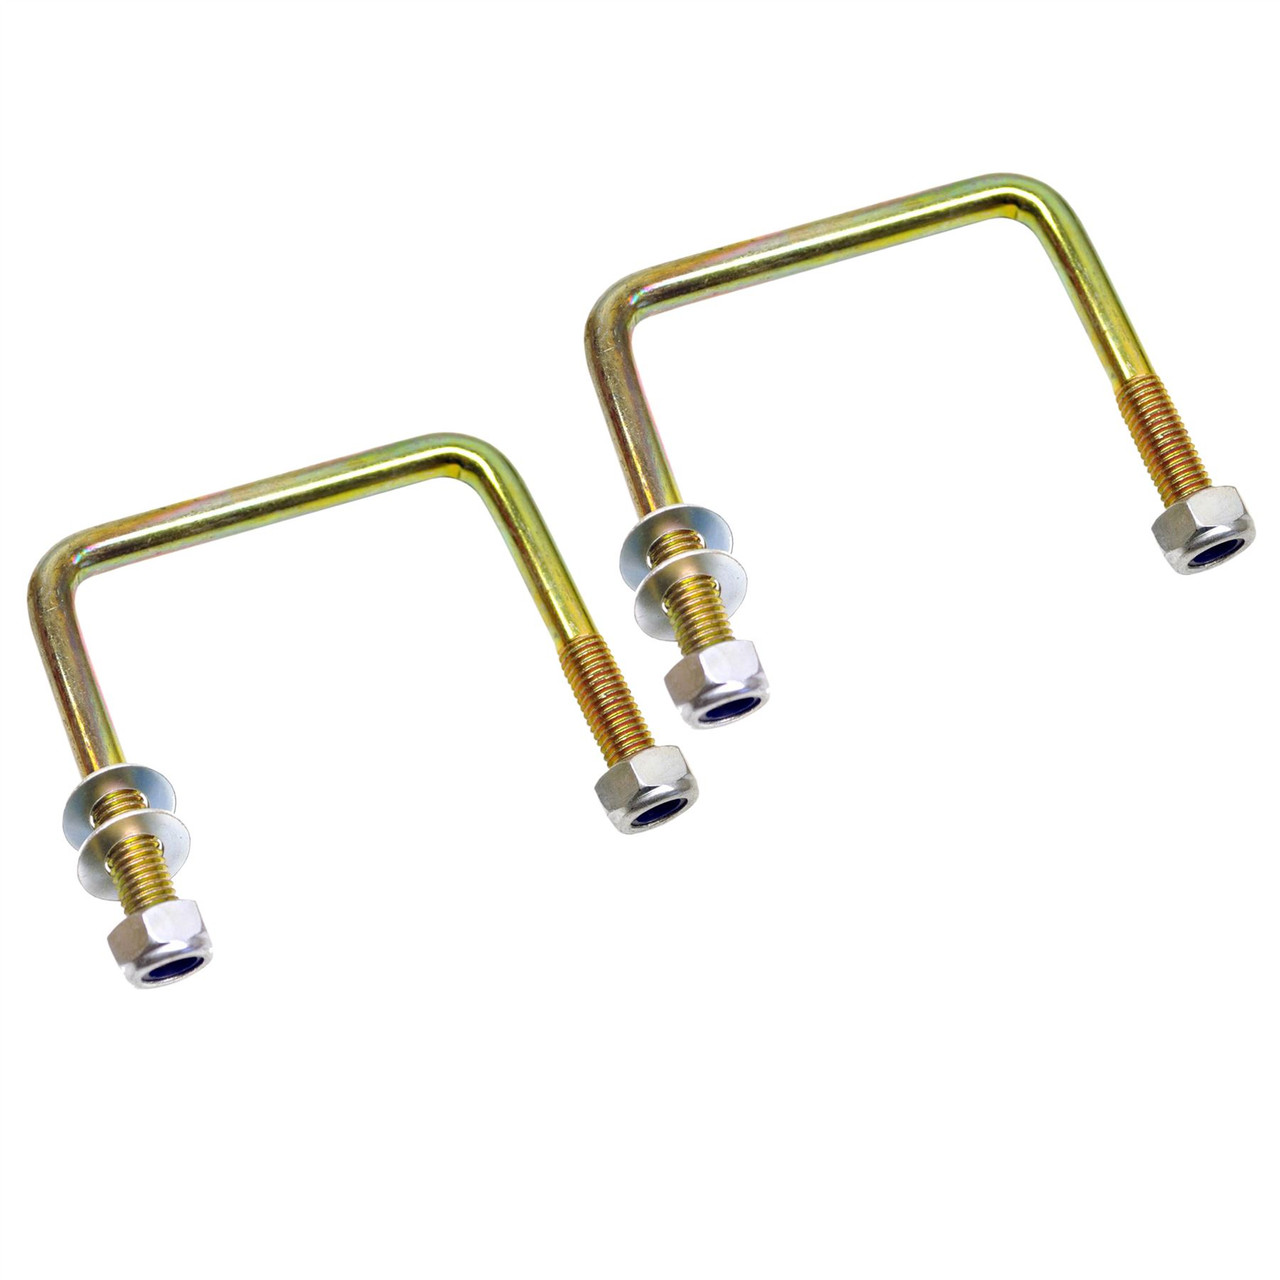 M10 80mm x 75mm U-Bolt / N-Bolt for Trailer 1 PAIR with Nuts HIGH TENSILE  UBR13